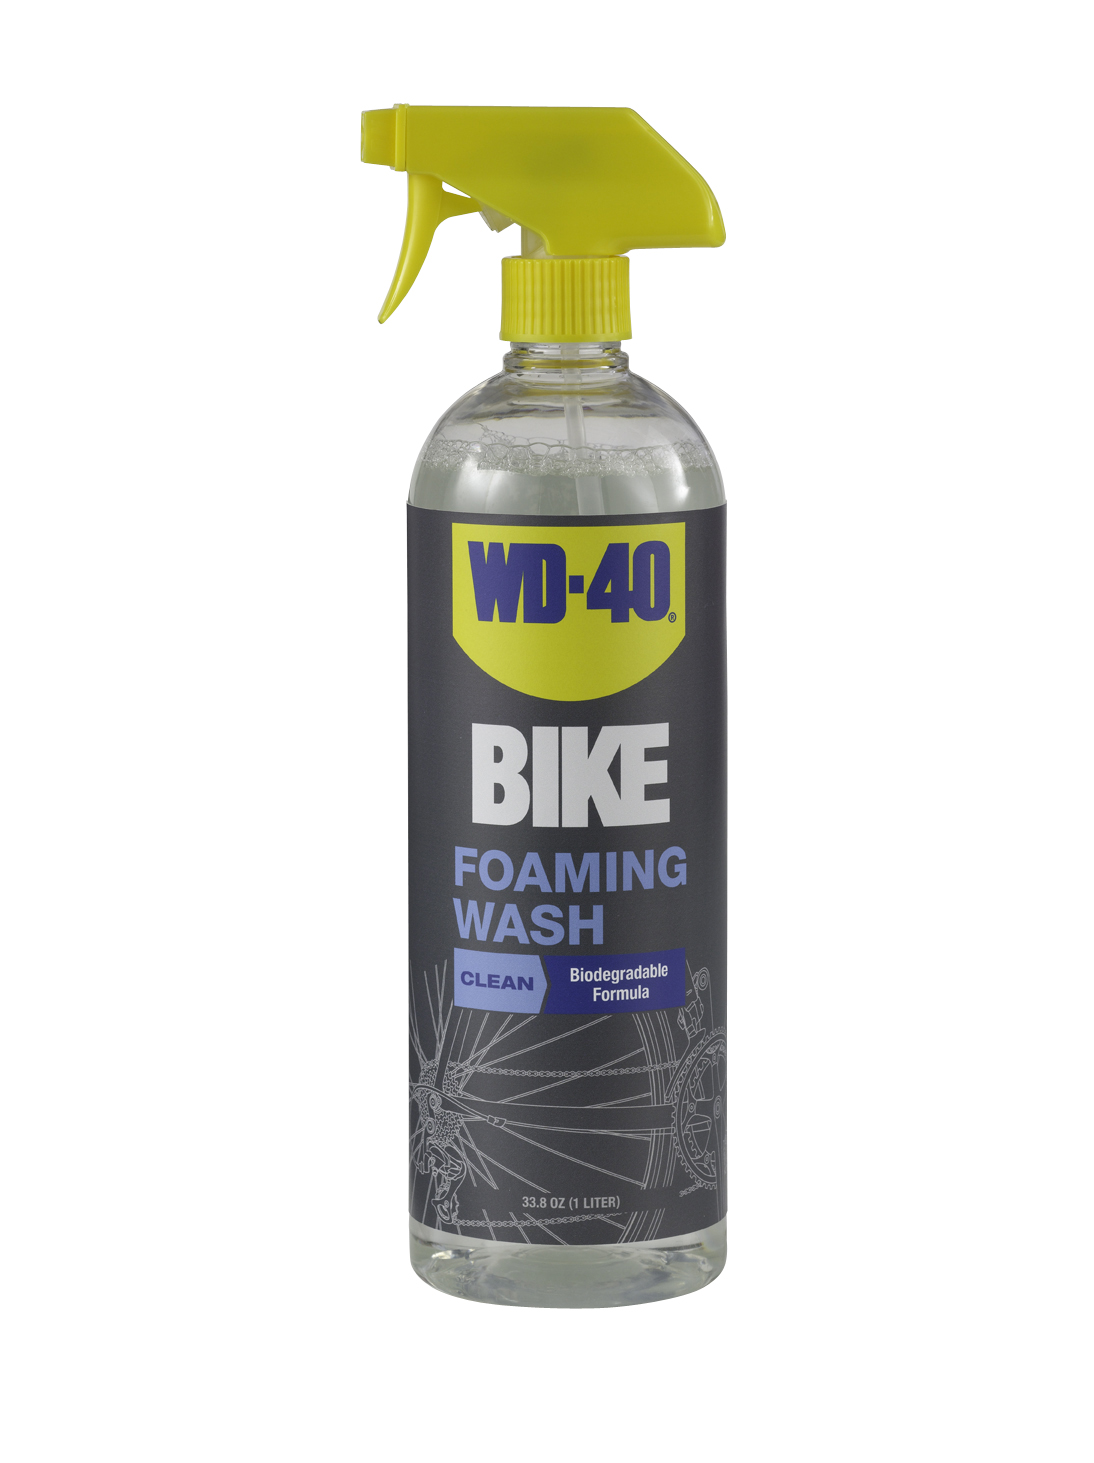 WD-40 BIKE Foaming wash